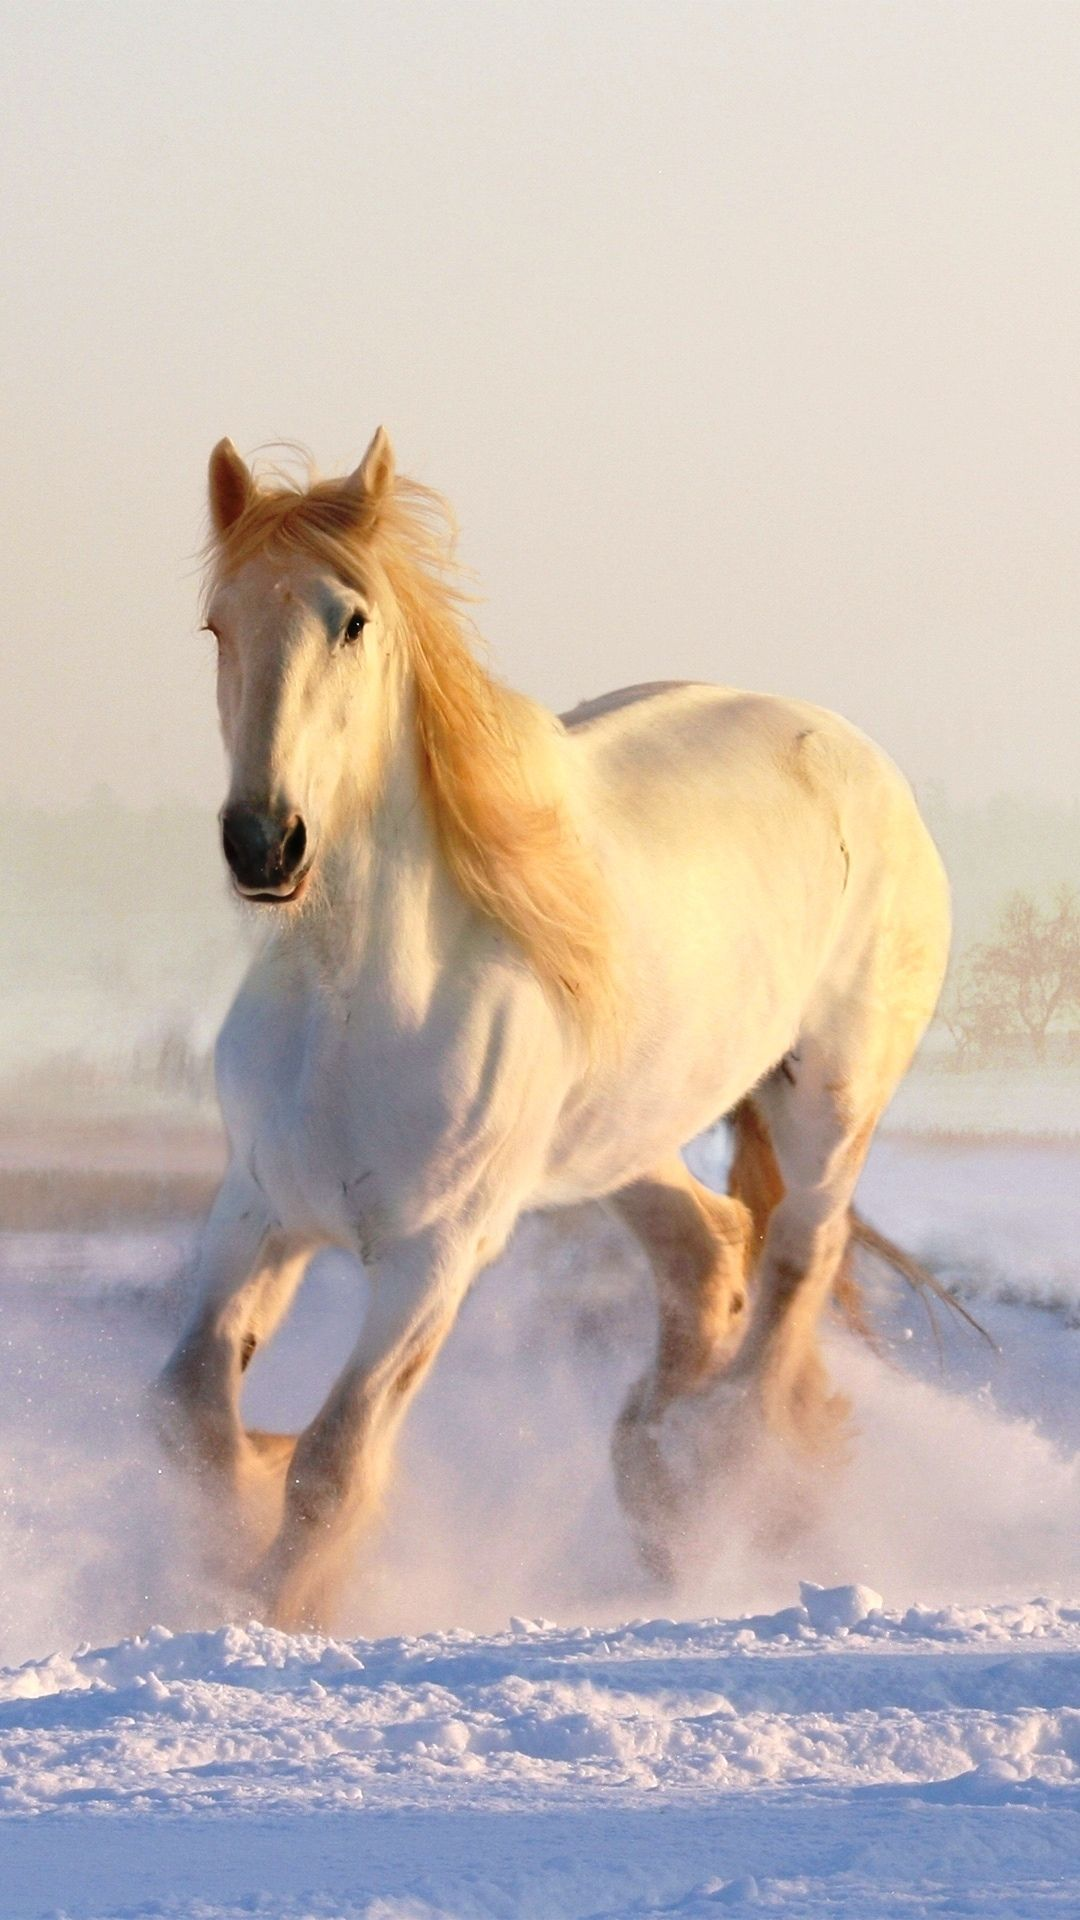 Pin By Gen Di Di B On Horse Pics Horses In Snow Horses Horse Wallpaper